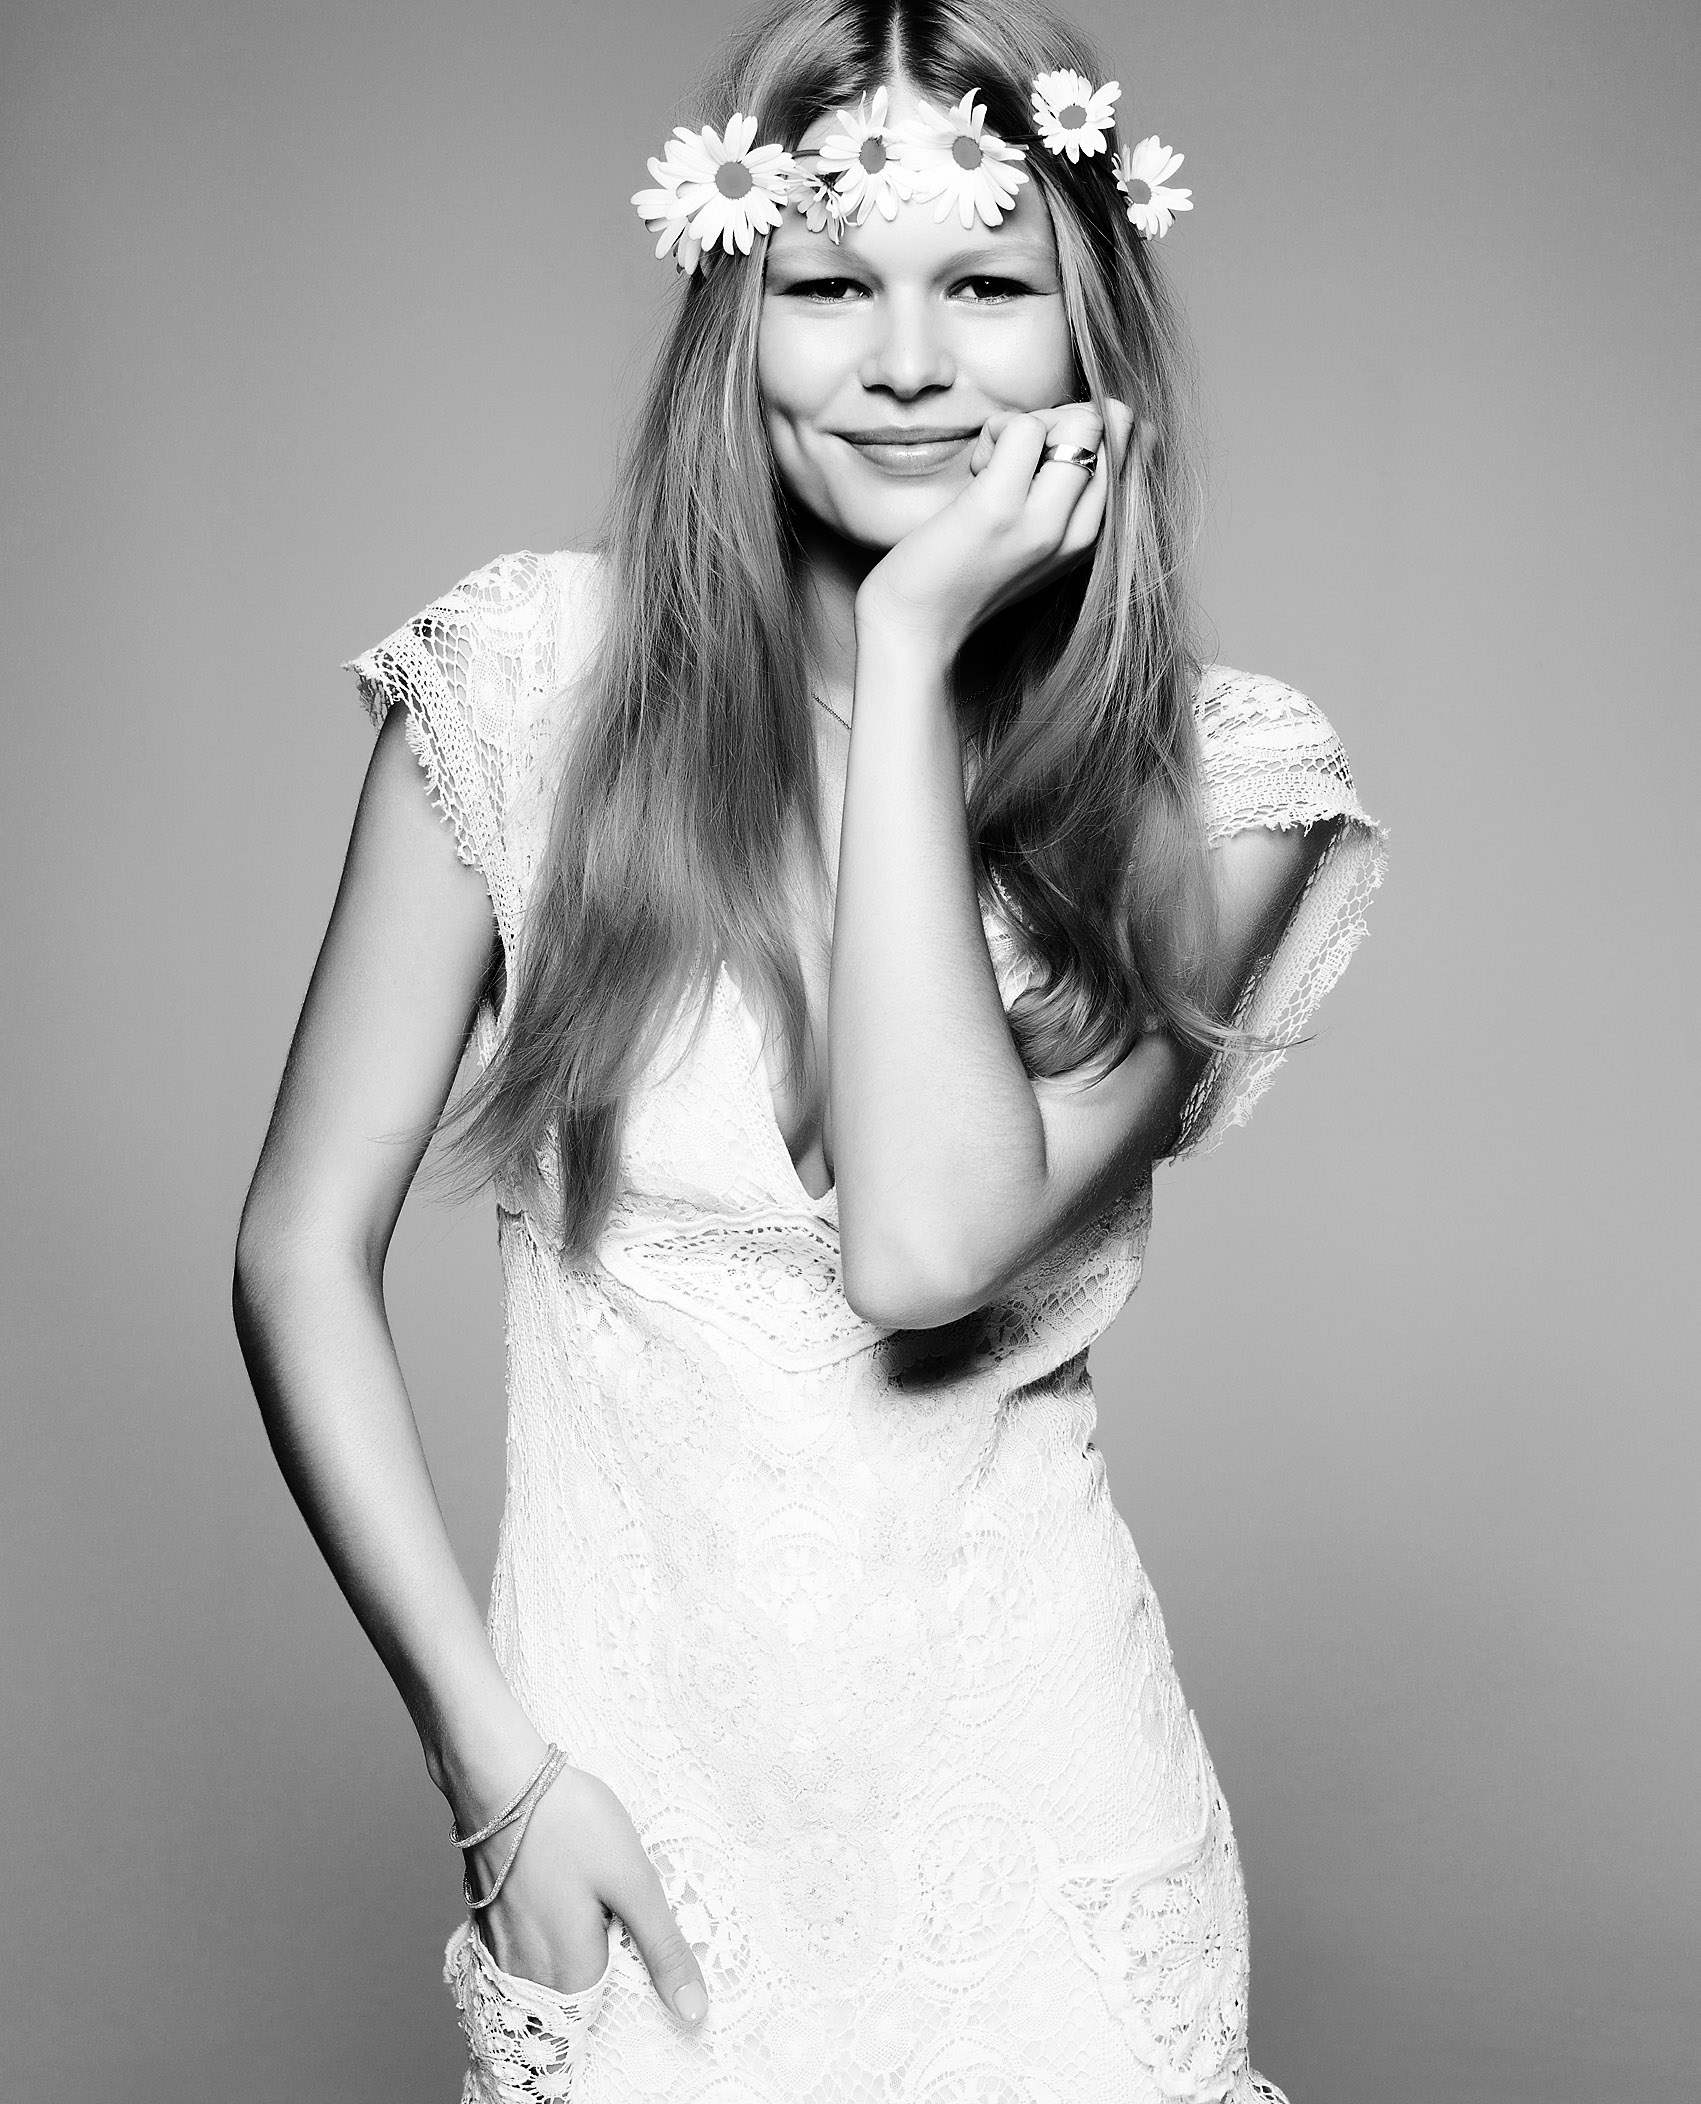 anna-ewers-by-jimmy-backius-for-kurz-jewelry-2014-5